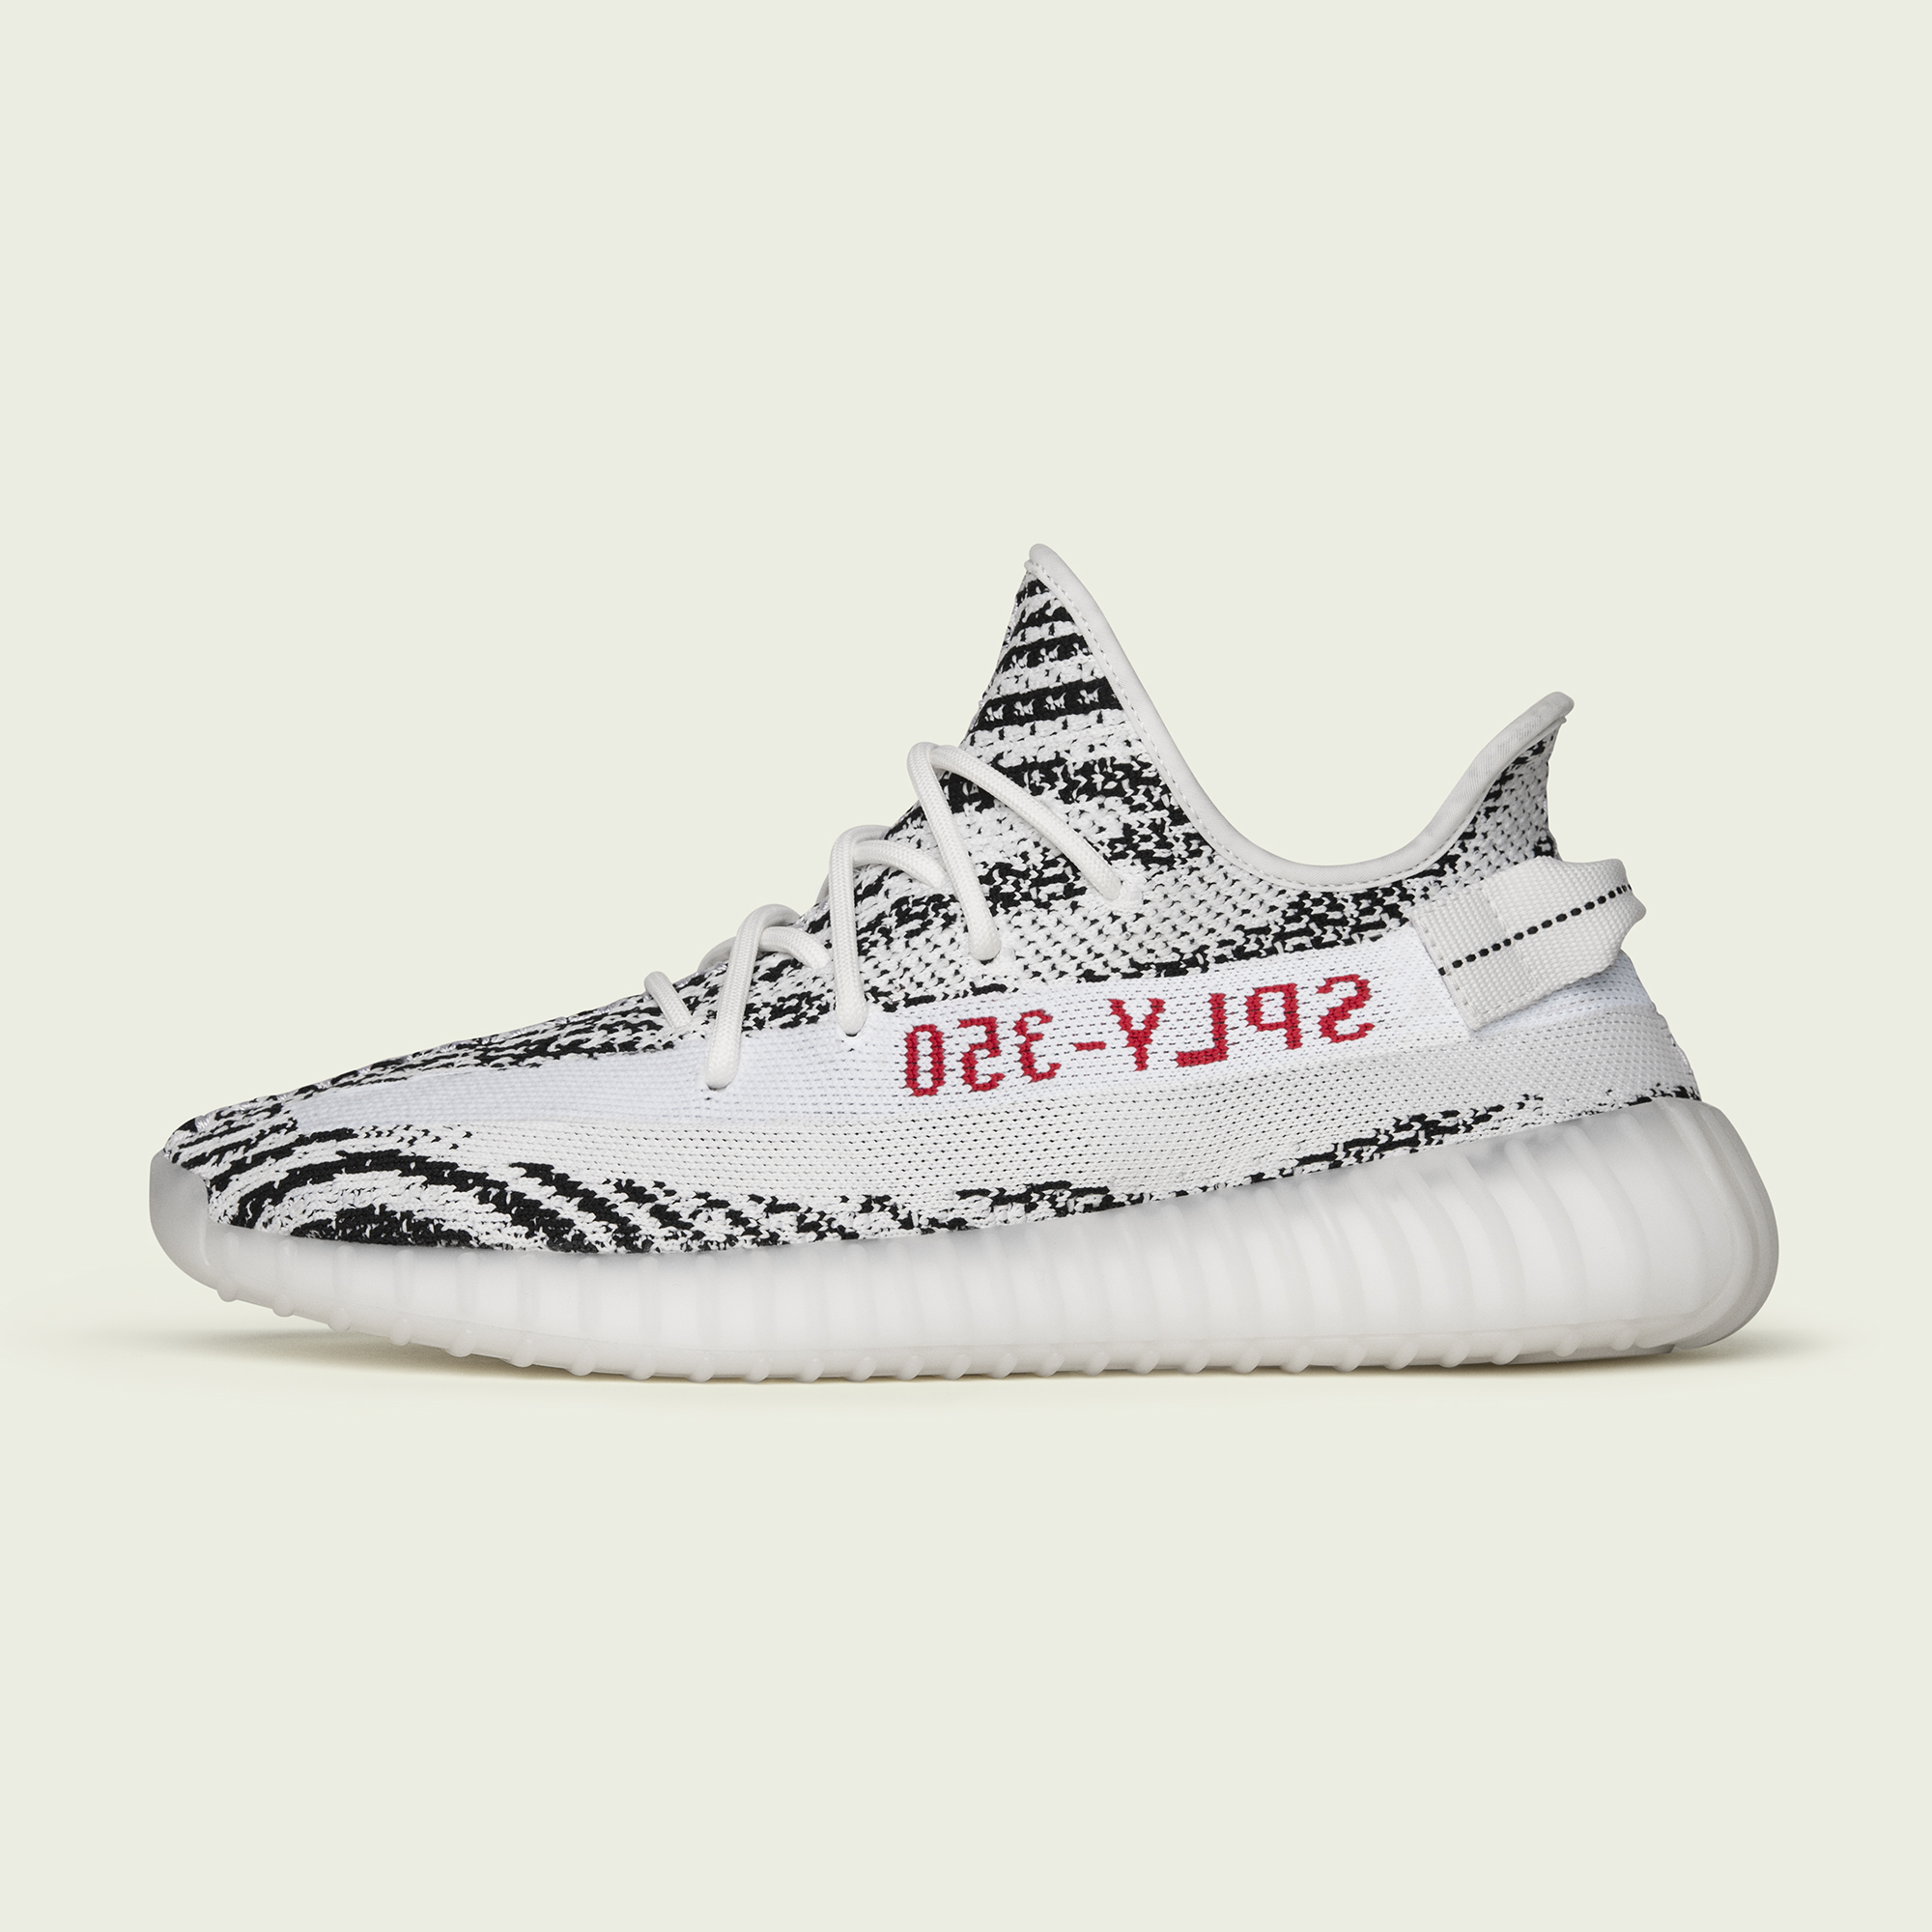 ADIDAS YEEZY BOOST 350 V2 INFANT CREAM WHITE BB6373